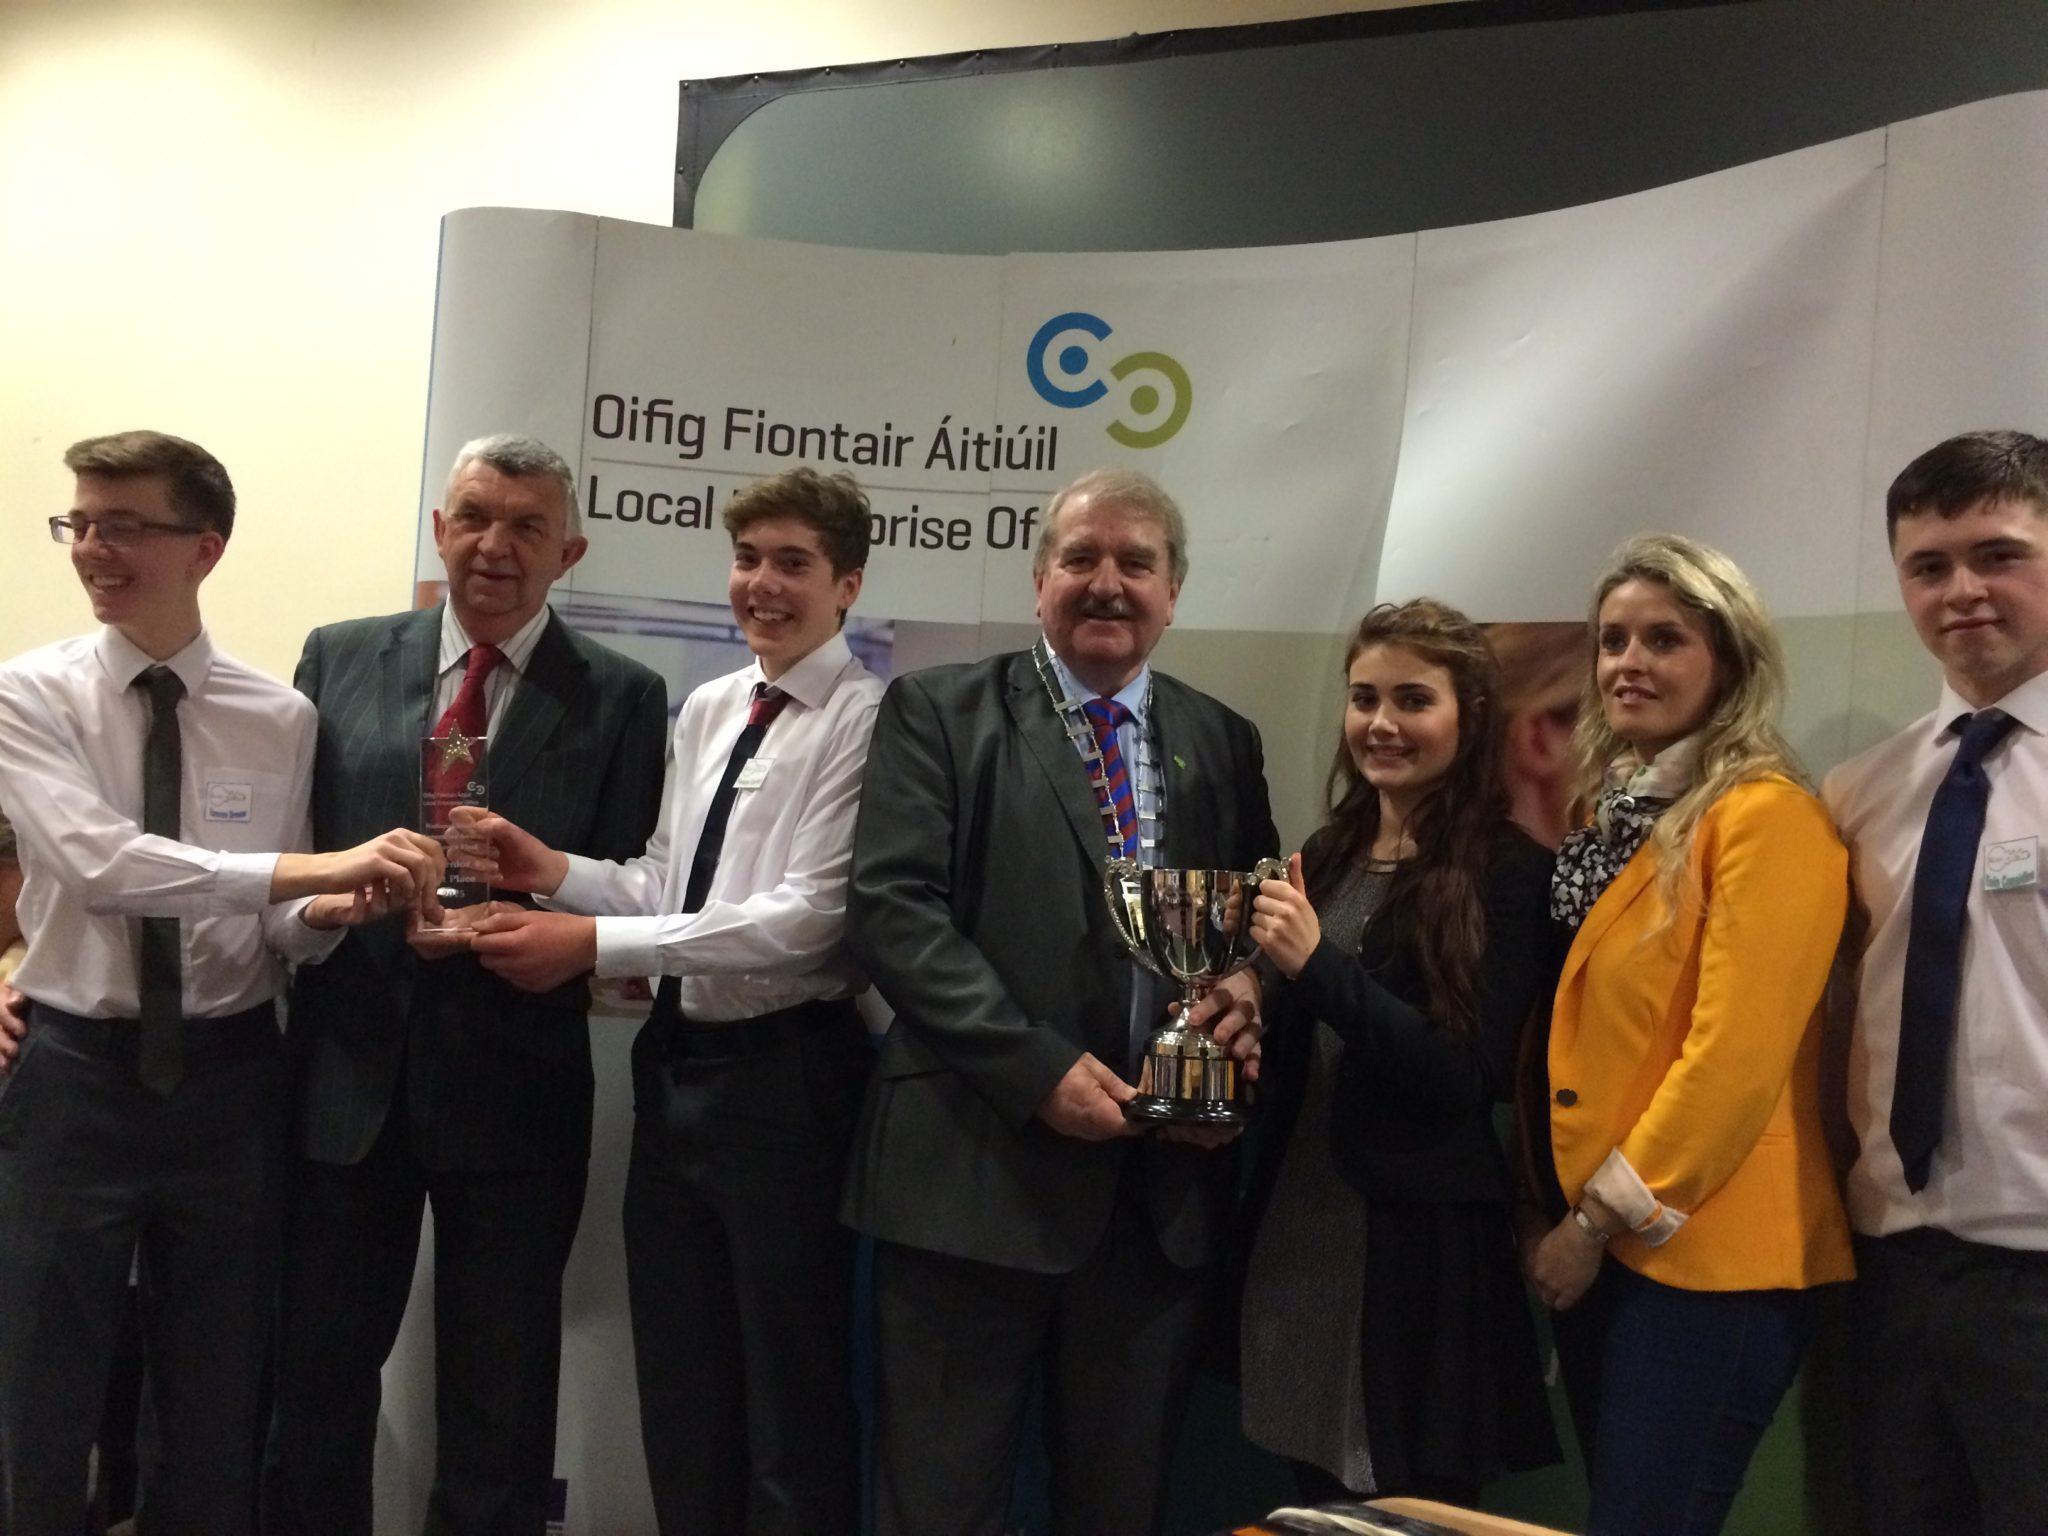 Eamon Browne, Eamonn Ryan (CEO Enterprise Board), Seamus Hurley, Kevin Sheehan (Mayor),Emma Herbert, Heather Supple (Limerick Enterprise Board), Eoin Considine